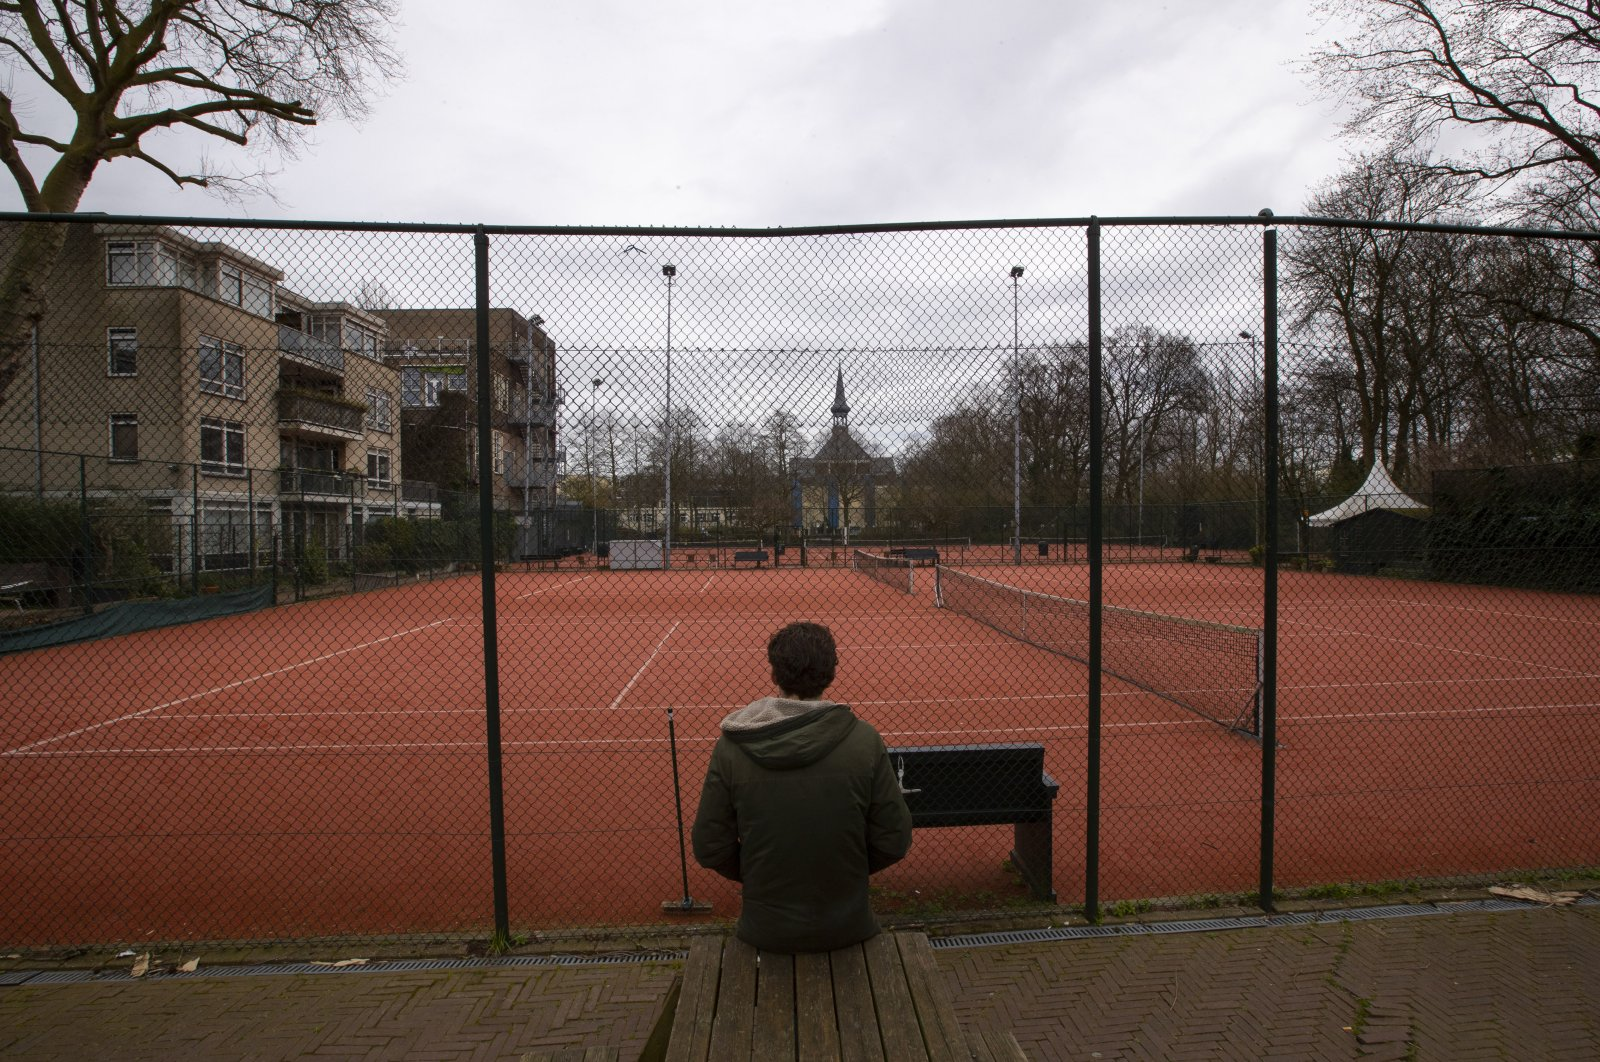 A man talks on his mobile phone outside a closed tennis club in Amsterdam, Netherlands, Wednesday, March 18, 2020. (AP Photo)